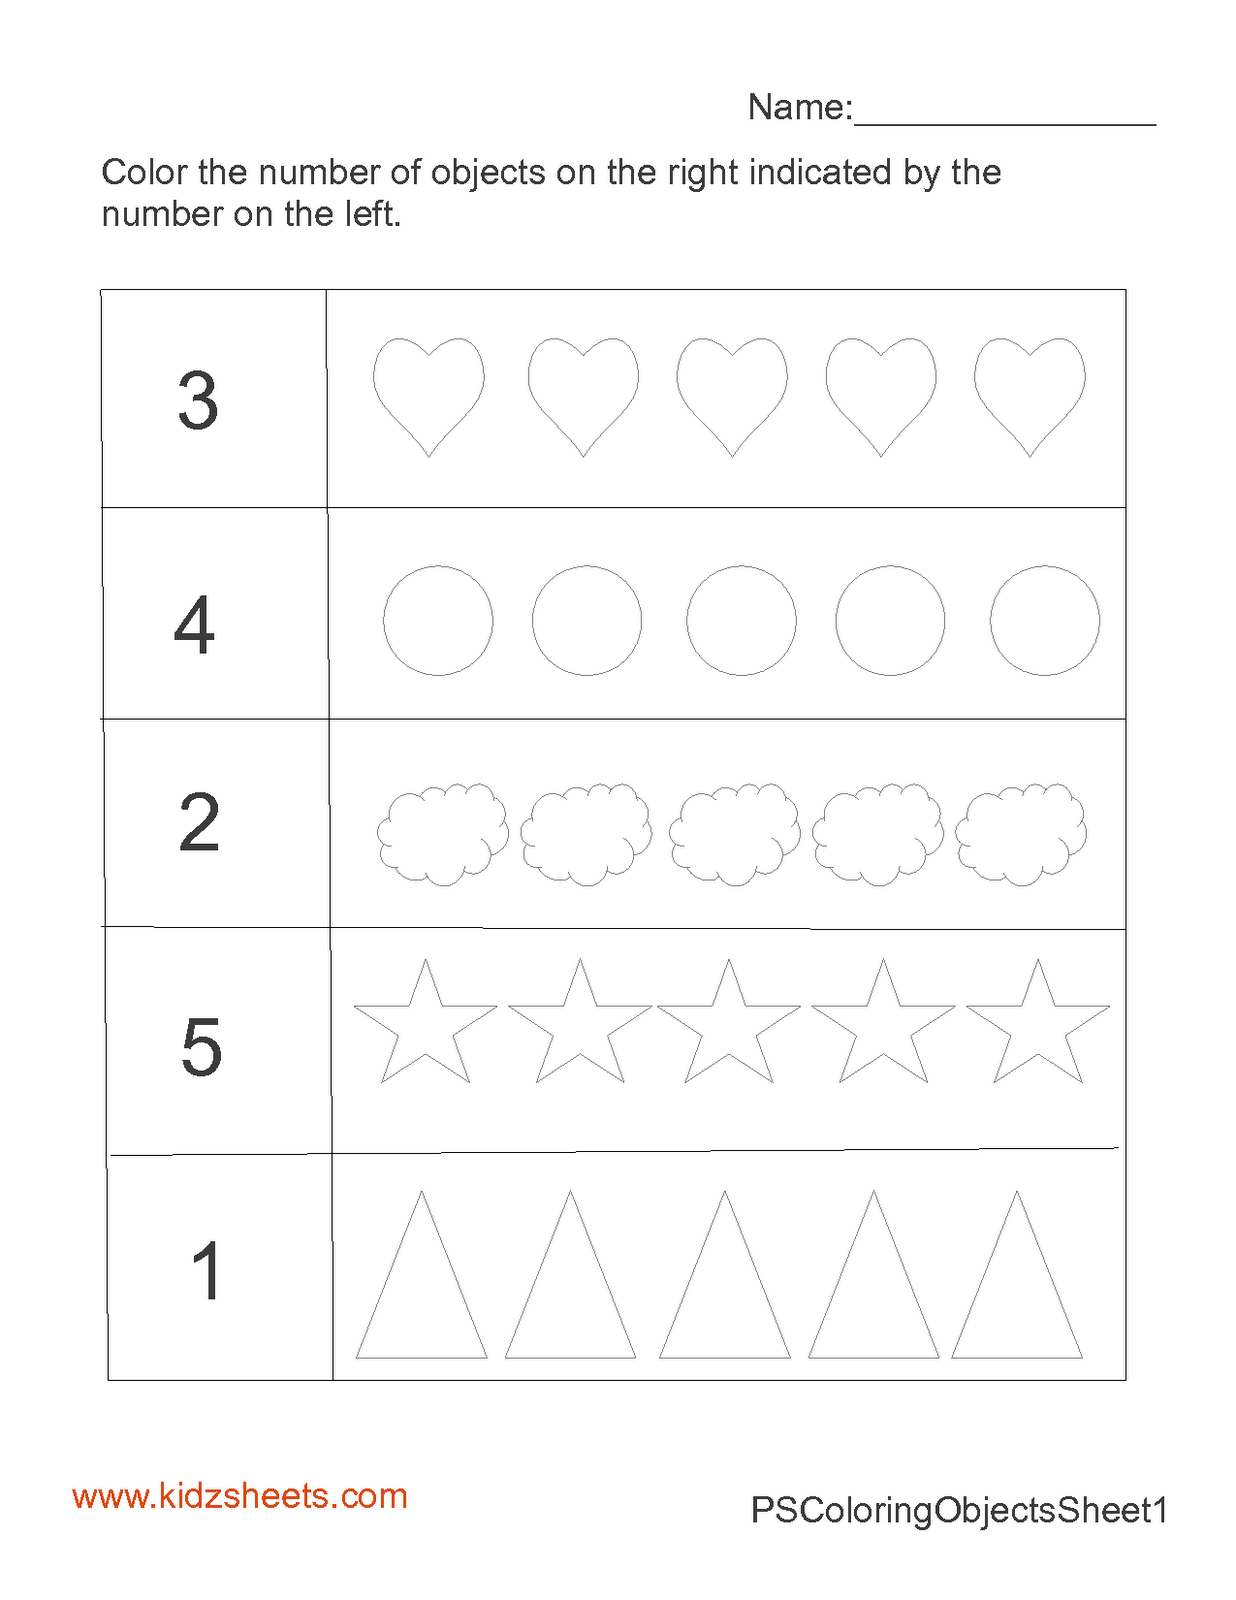 16 Best Images Of Kindergarten Counting Worksheets 1 5